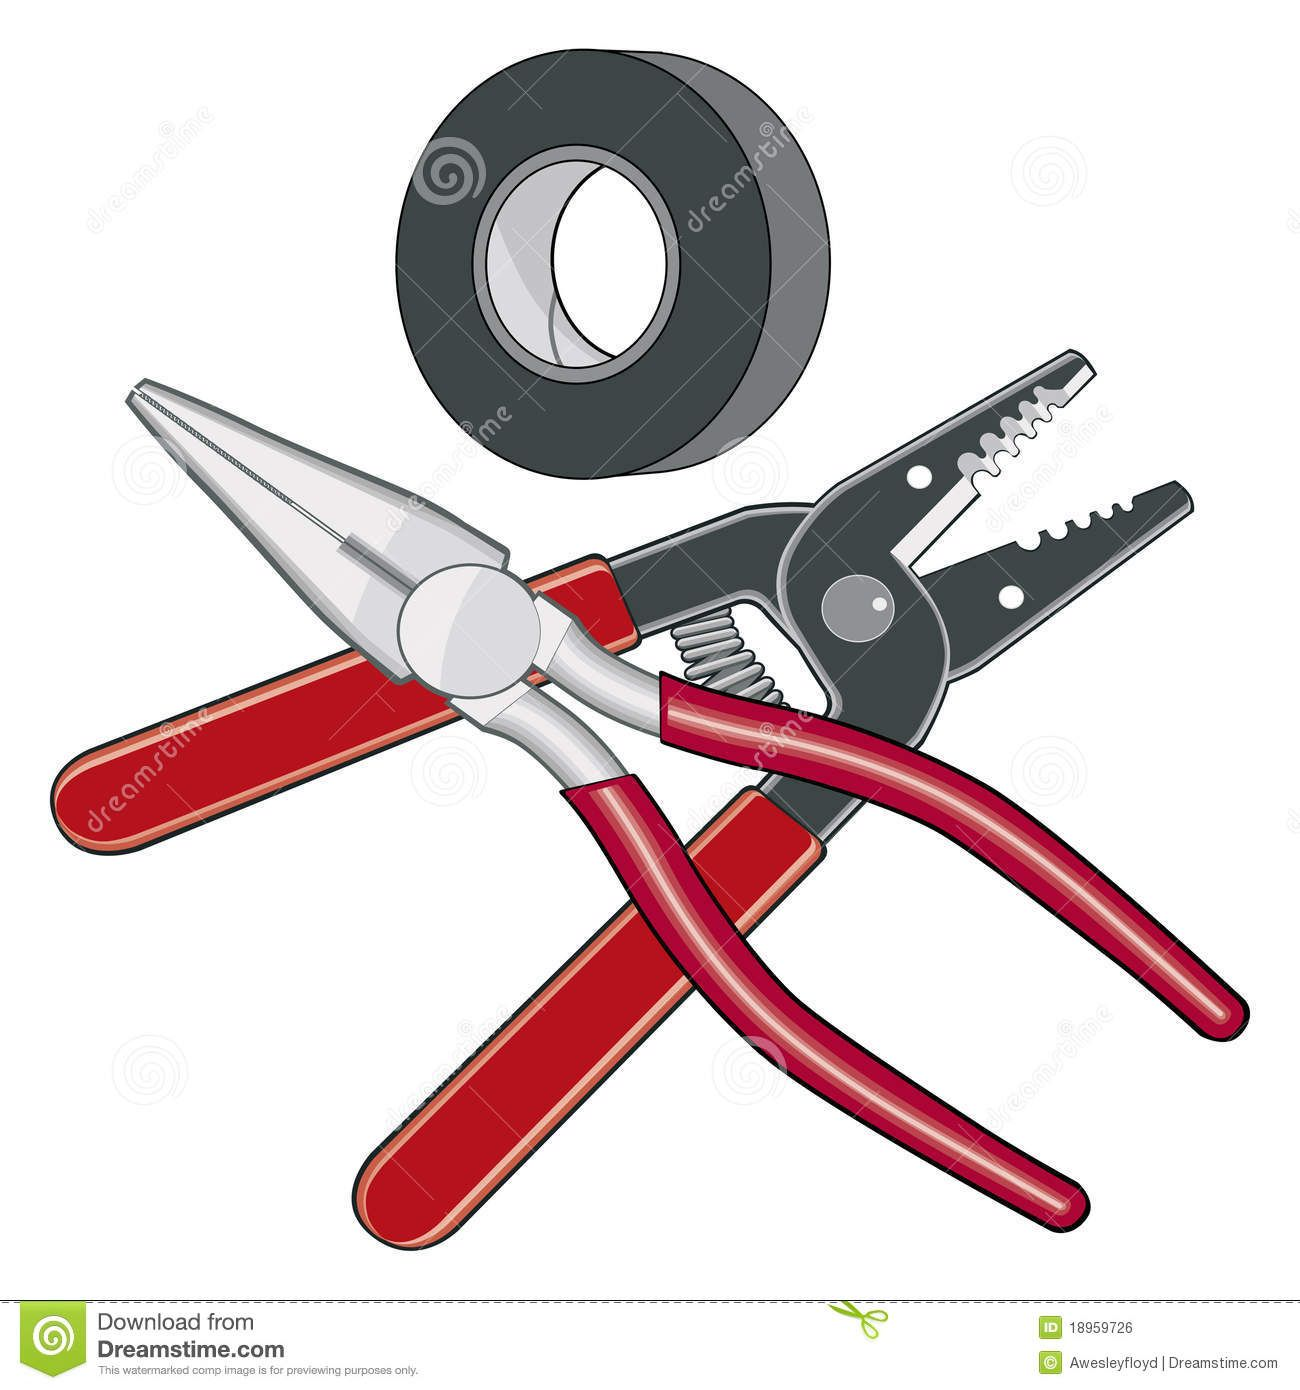 Electrical clipart electrical hand tool. Electrician tools logo royalty